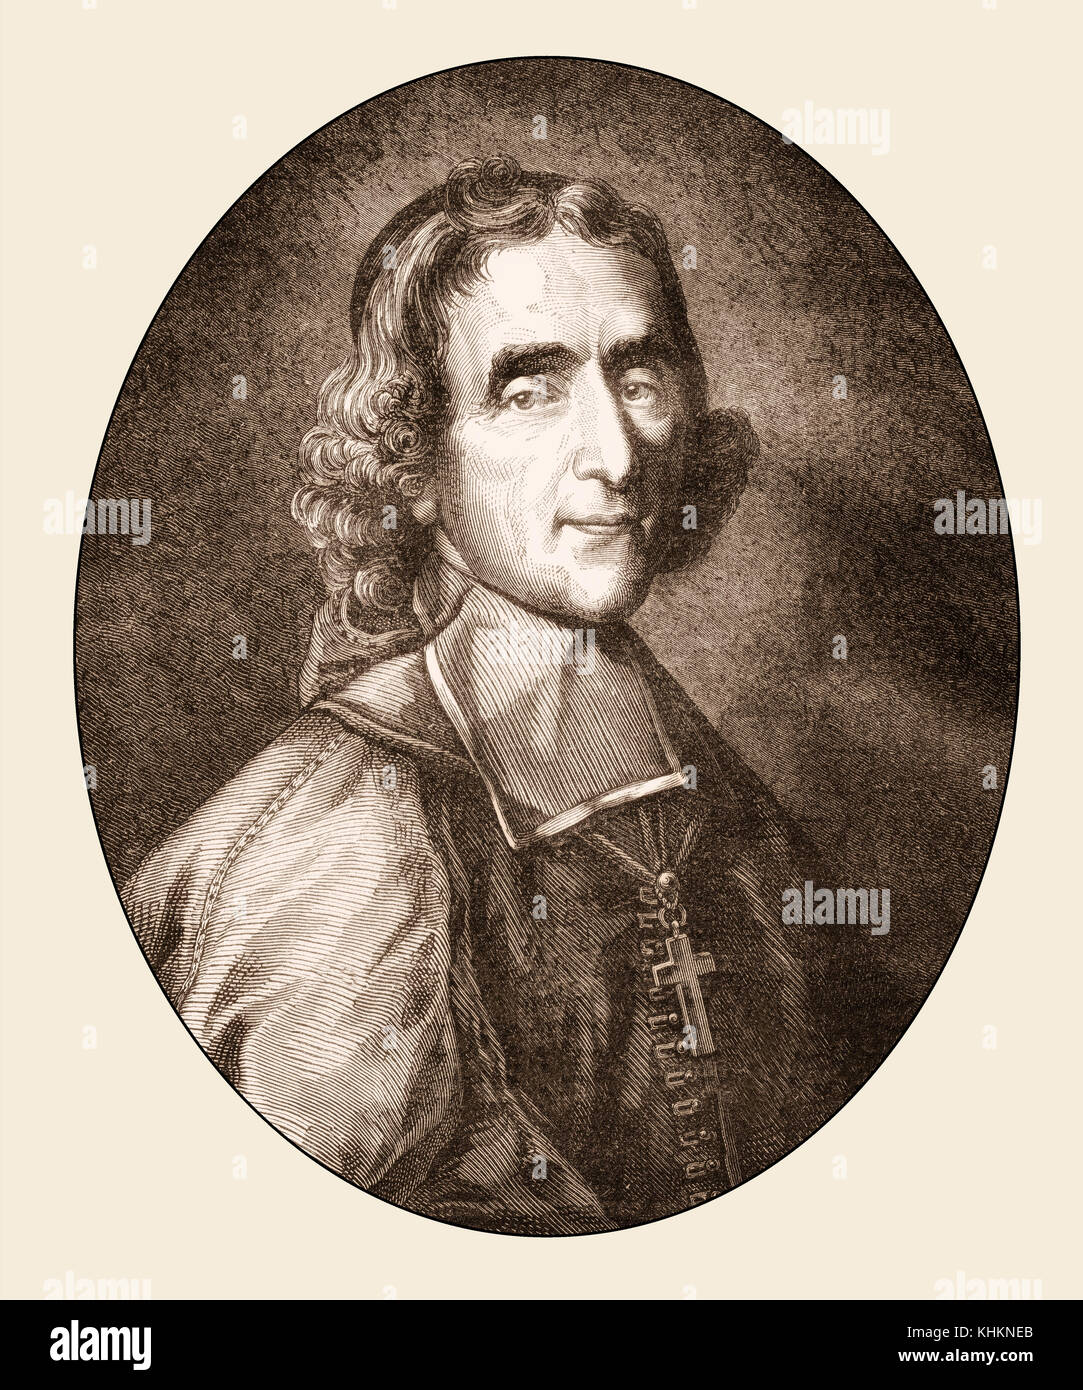 François de Salignac de La Mothe-Fénelon, 1651 - 1715, a French archbishop and writer - Stock Image